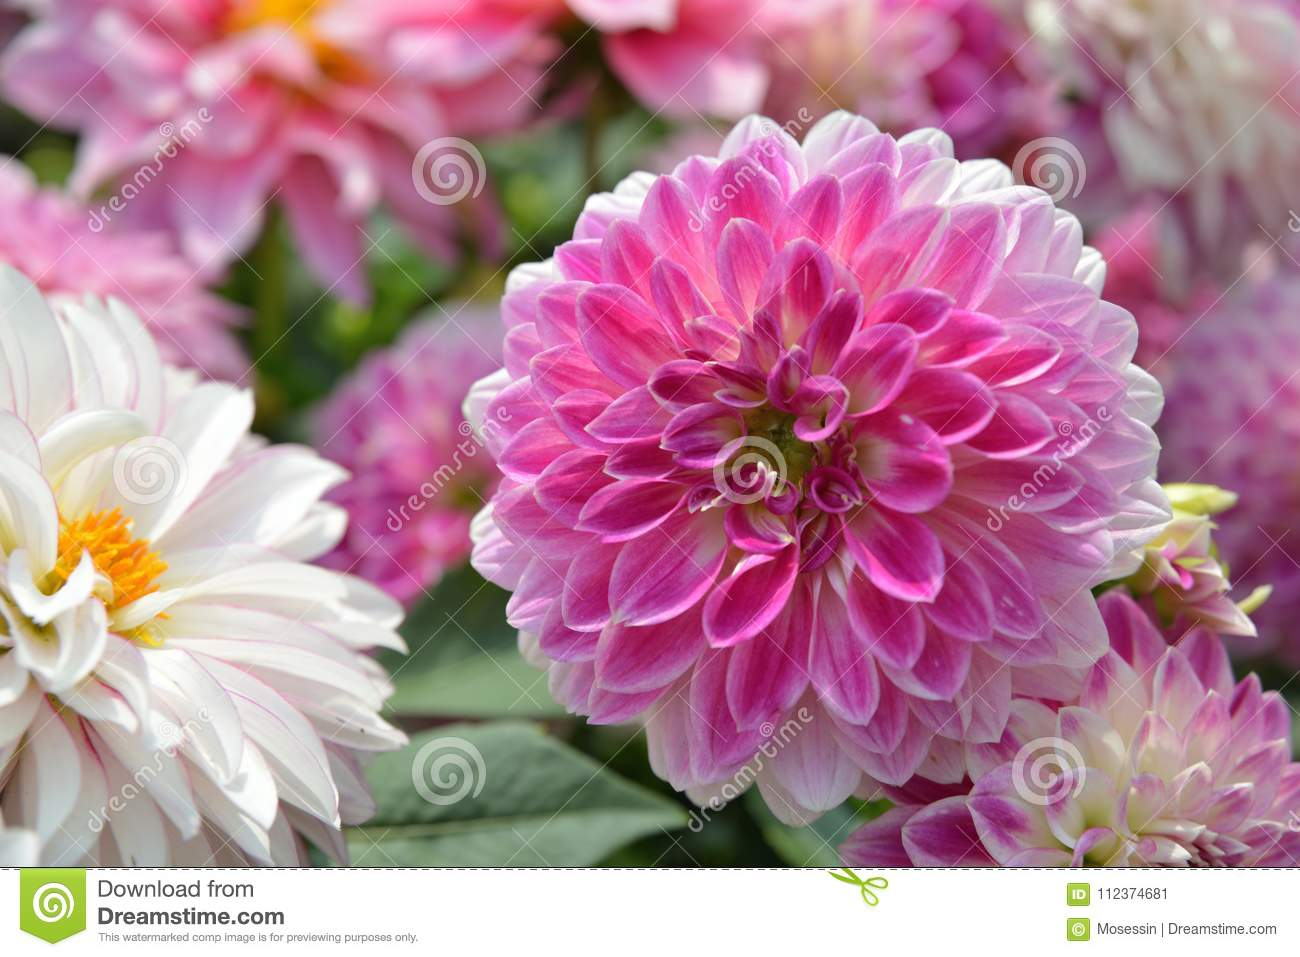 Pink Dahlia Flower Stock Image Image Of Flower Panicles 112374681